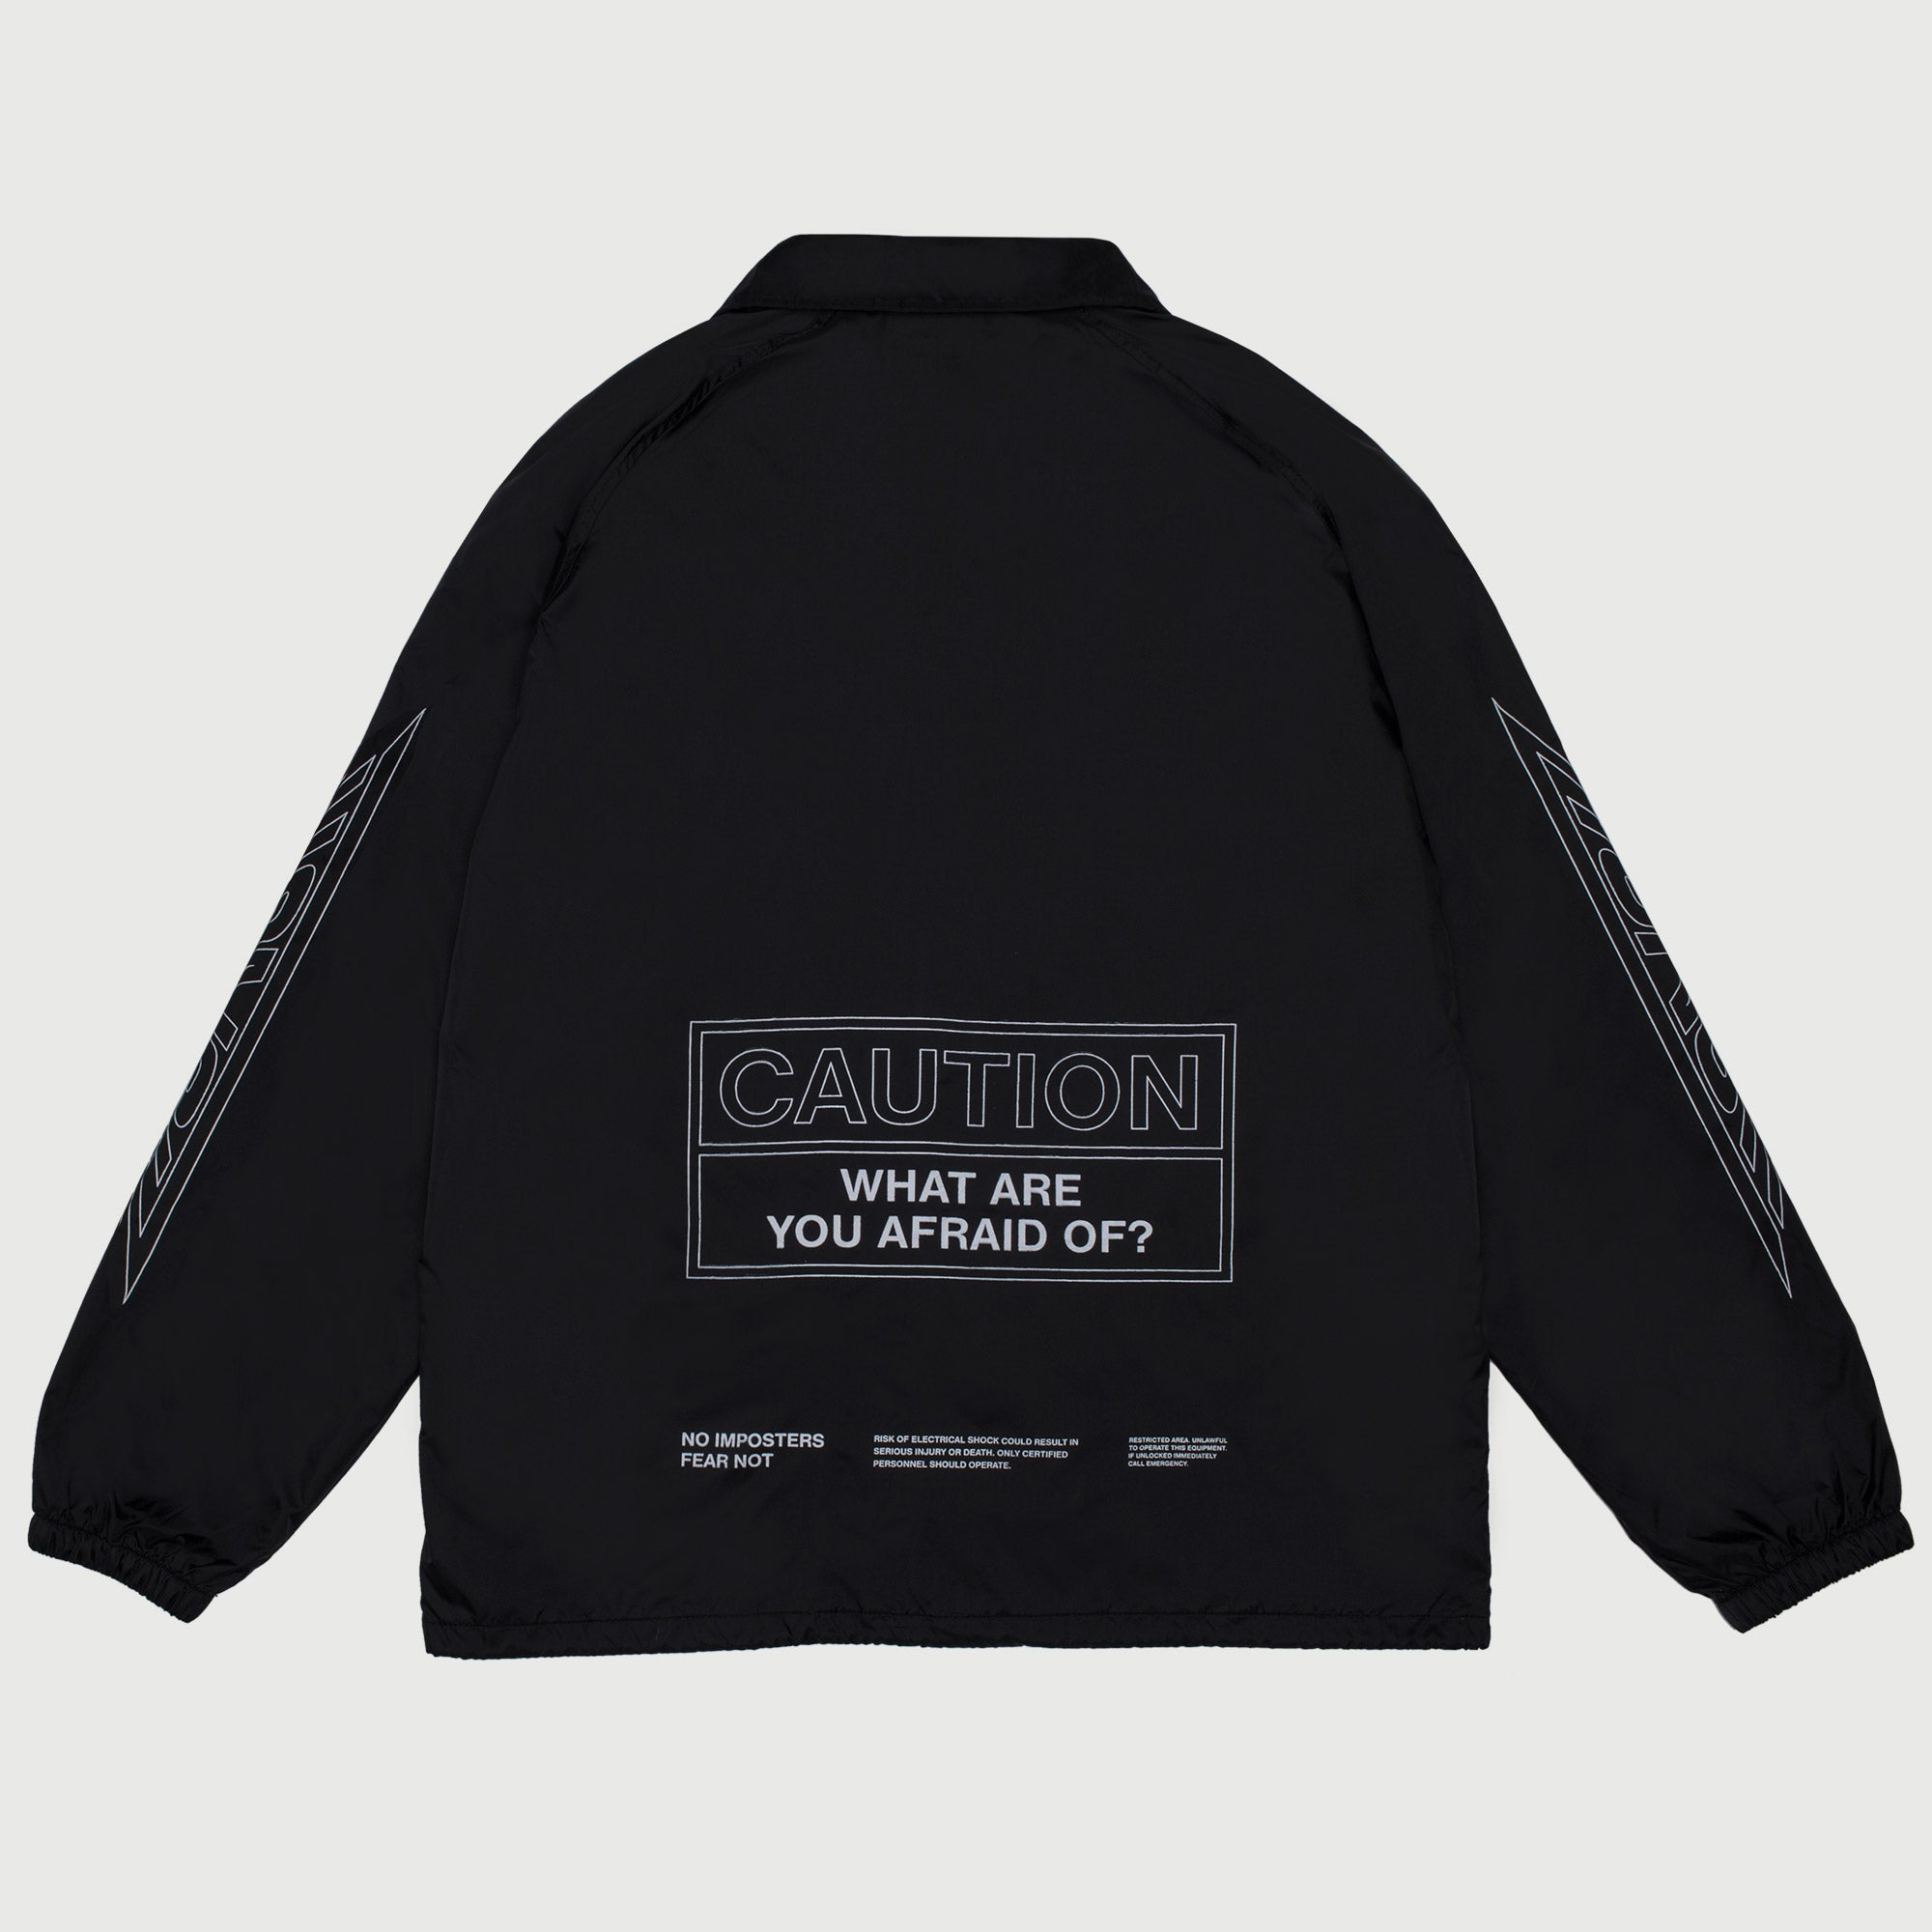 CAUTION JACKET